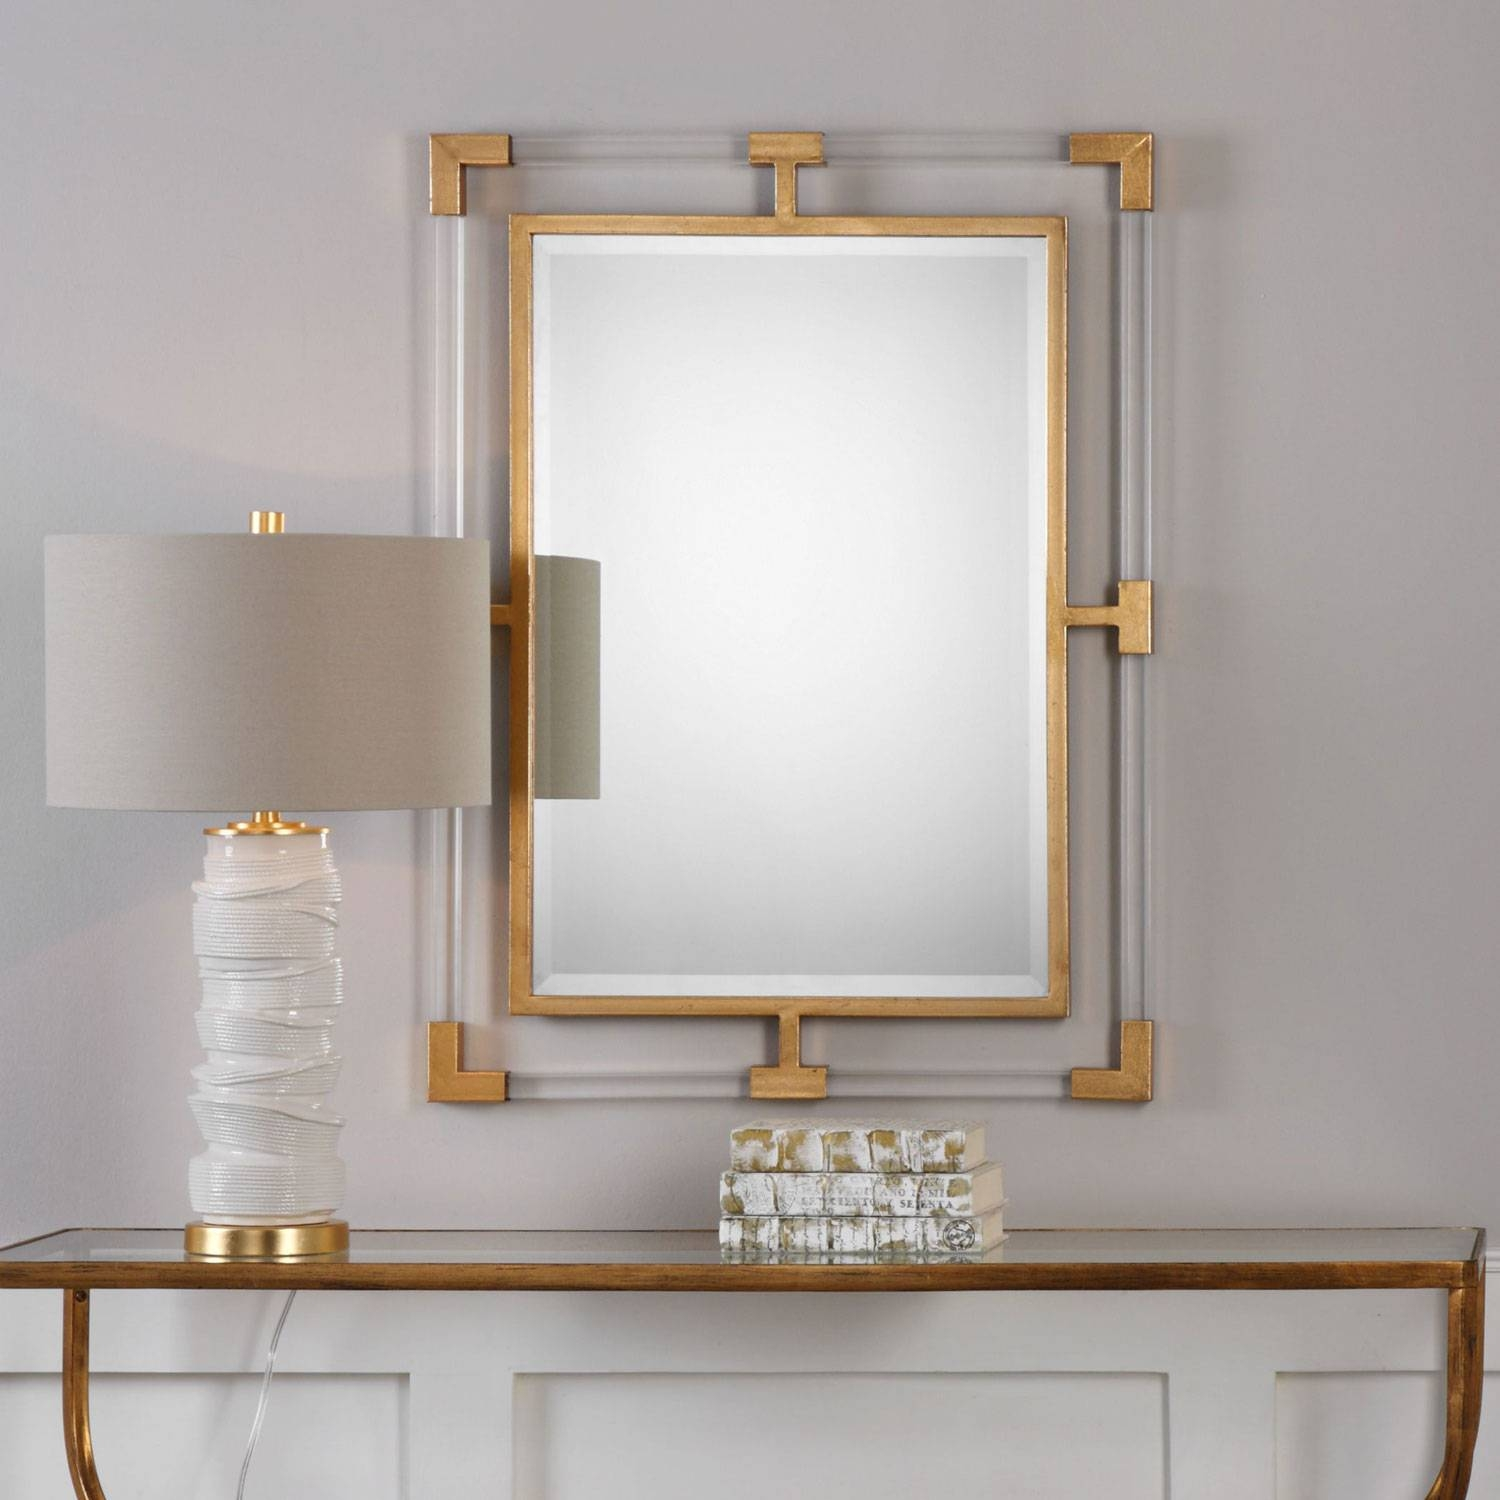 Balkan Modern Gold Wall Mirror Uttermost Wall Mirror Mirrors Home within Modern Gold Mirrors (Image 6 of 25)